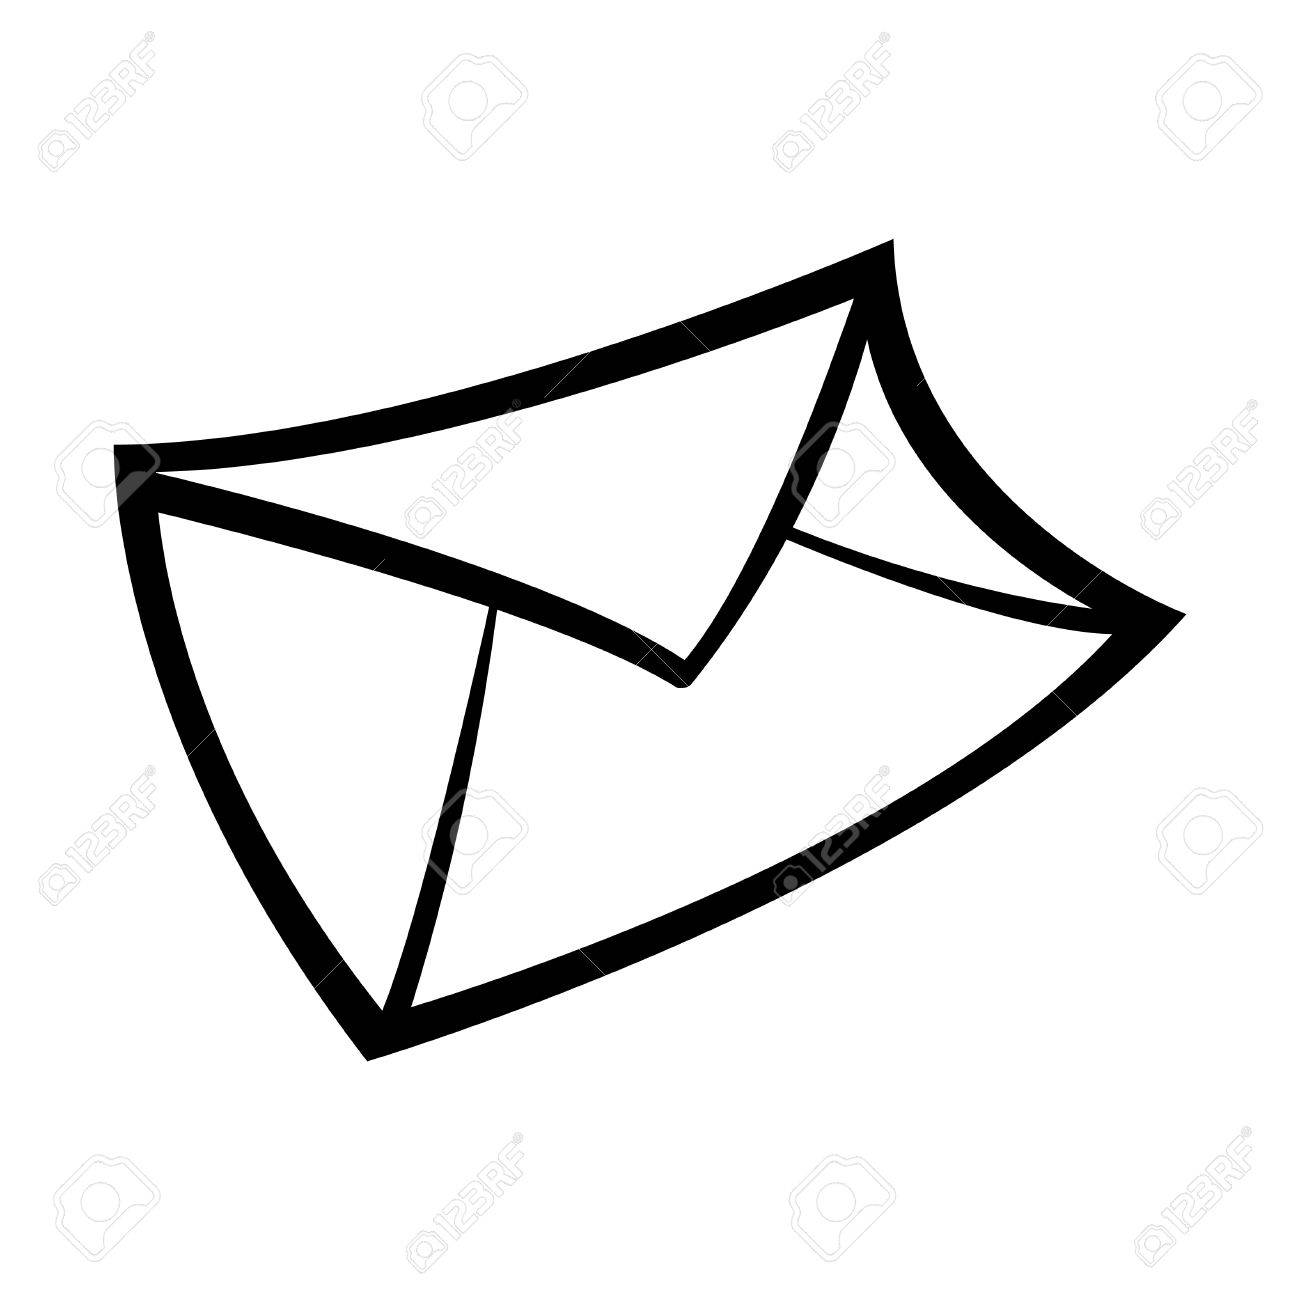 envelope vector illustration royalty free cliparts vectors and rh 123rf com envelope vector download envelope vector ai